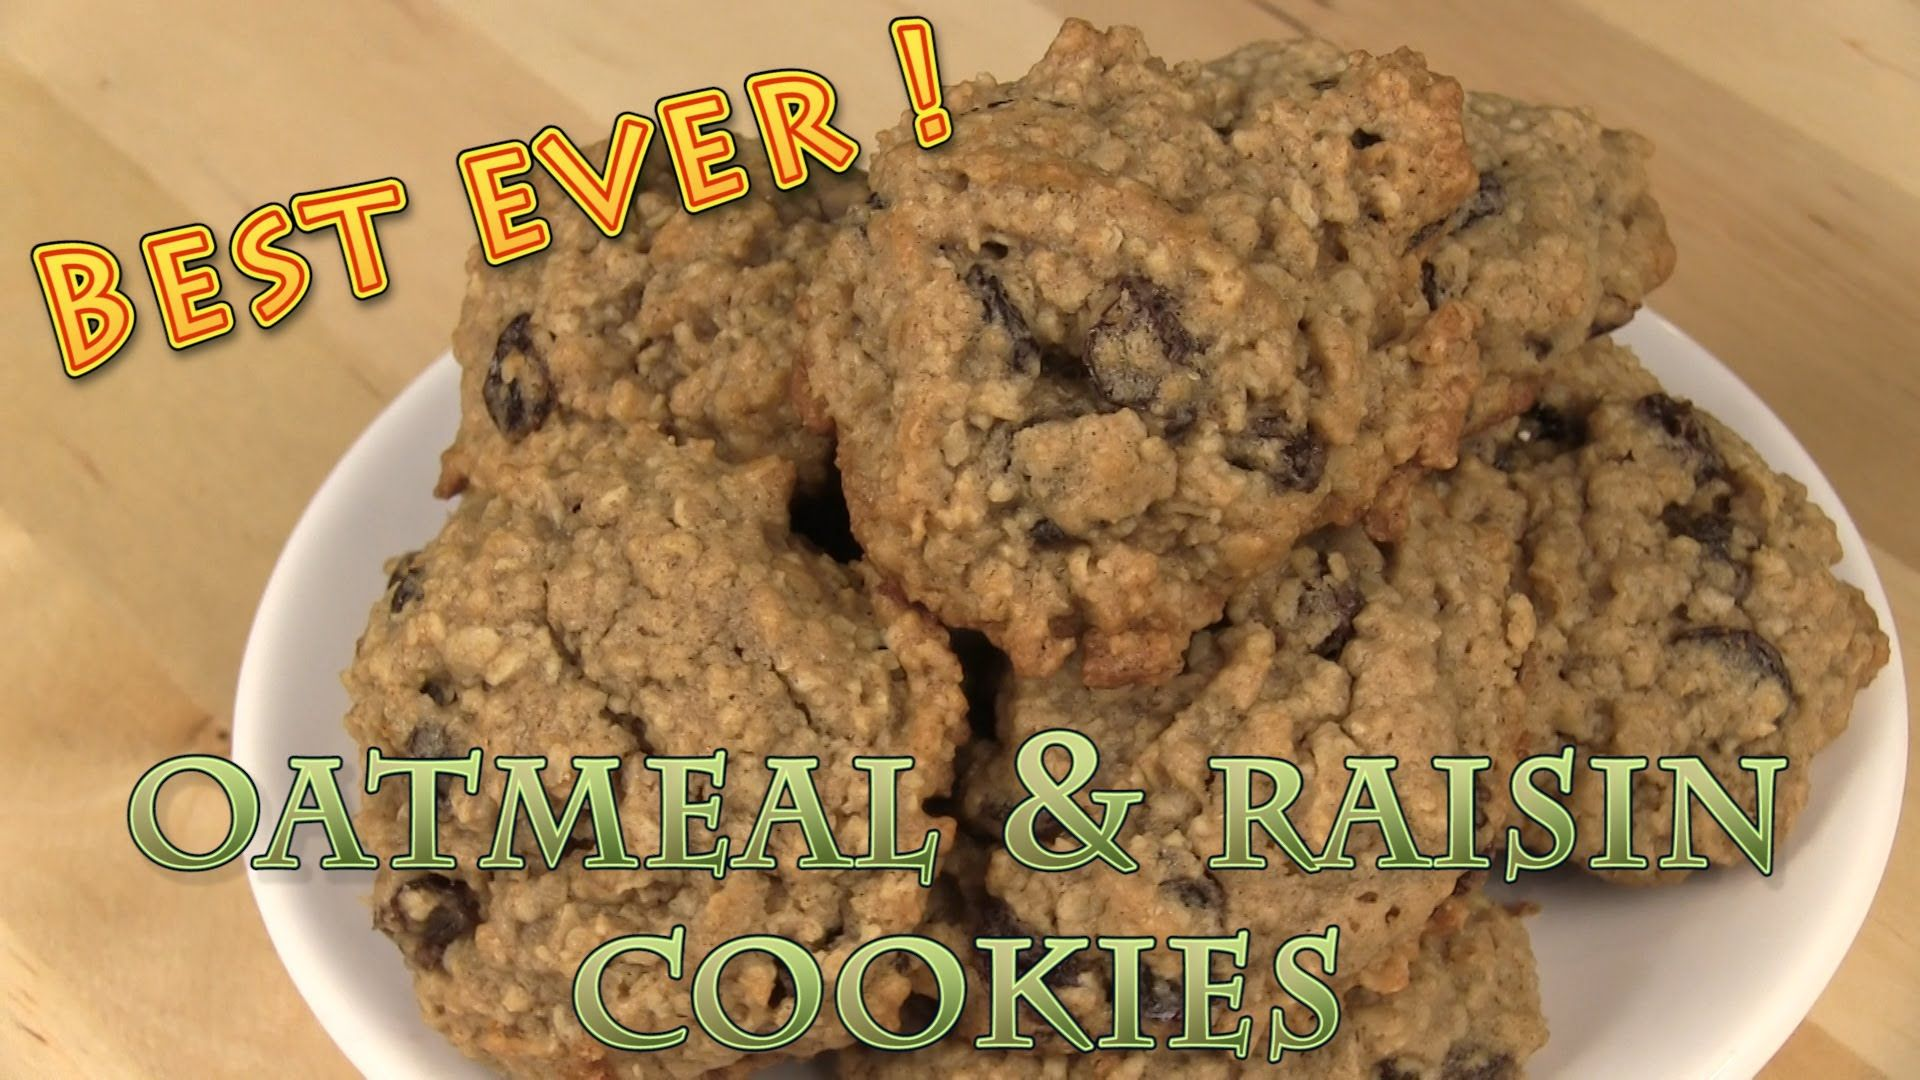 Best Ever Oatmeal Raisin Cookies Recipe